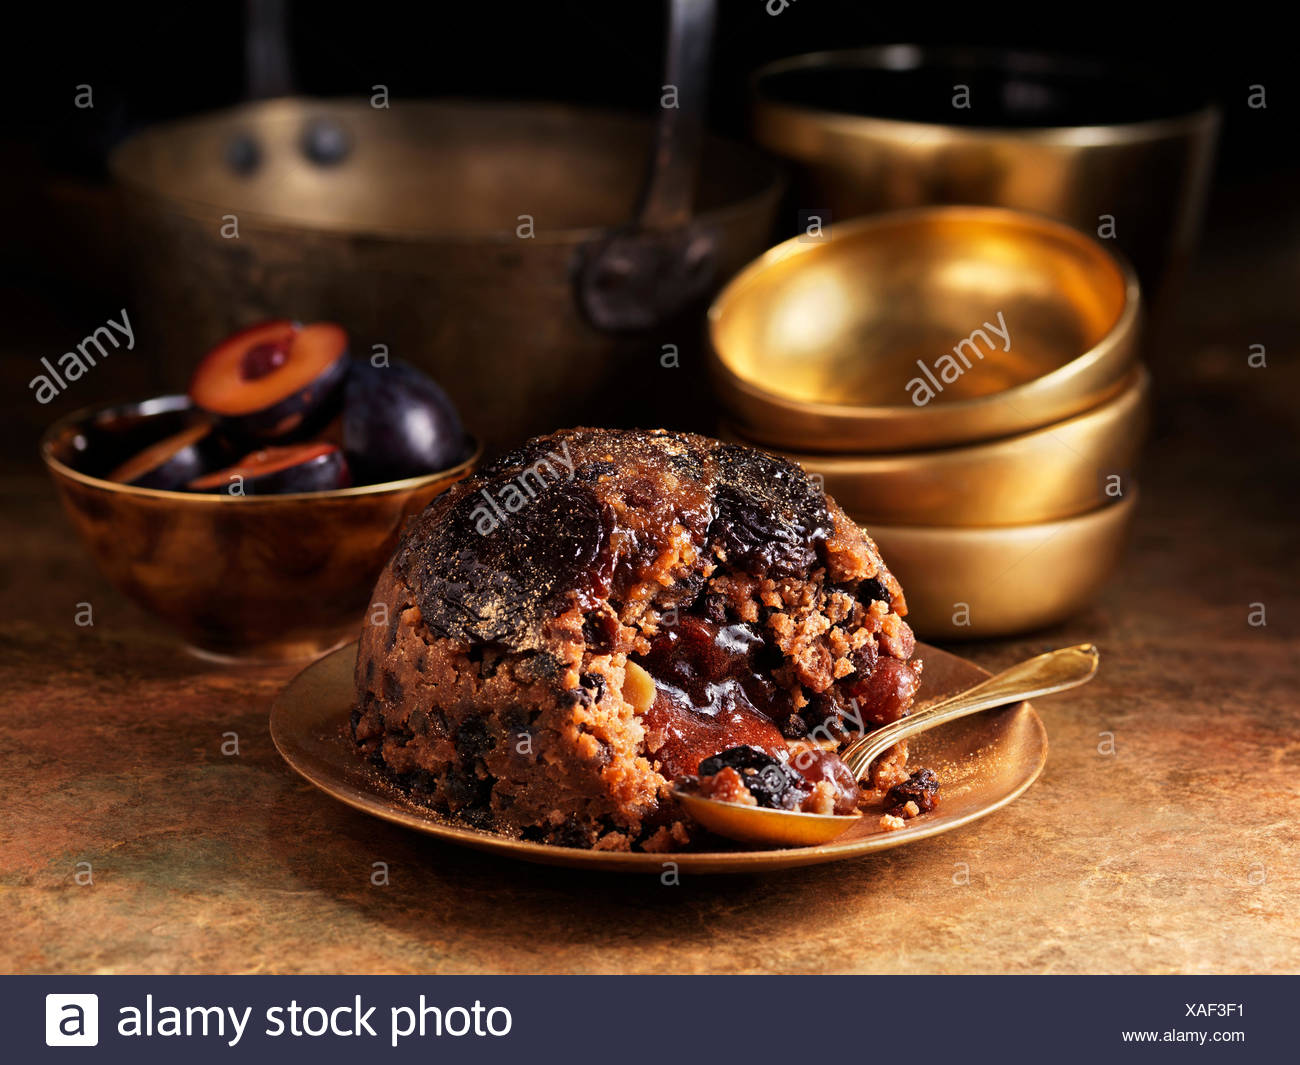 Sugar plum pudding - Stock Image